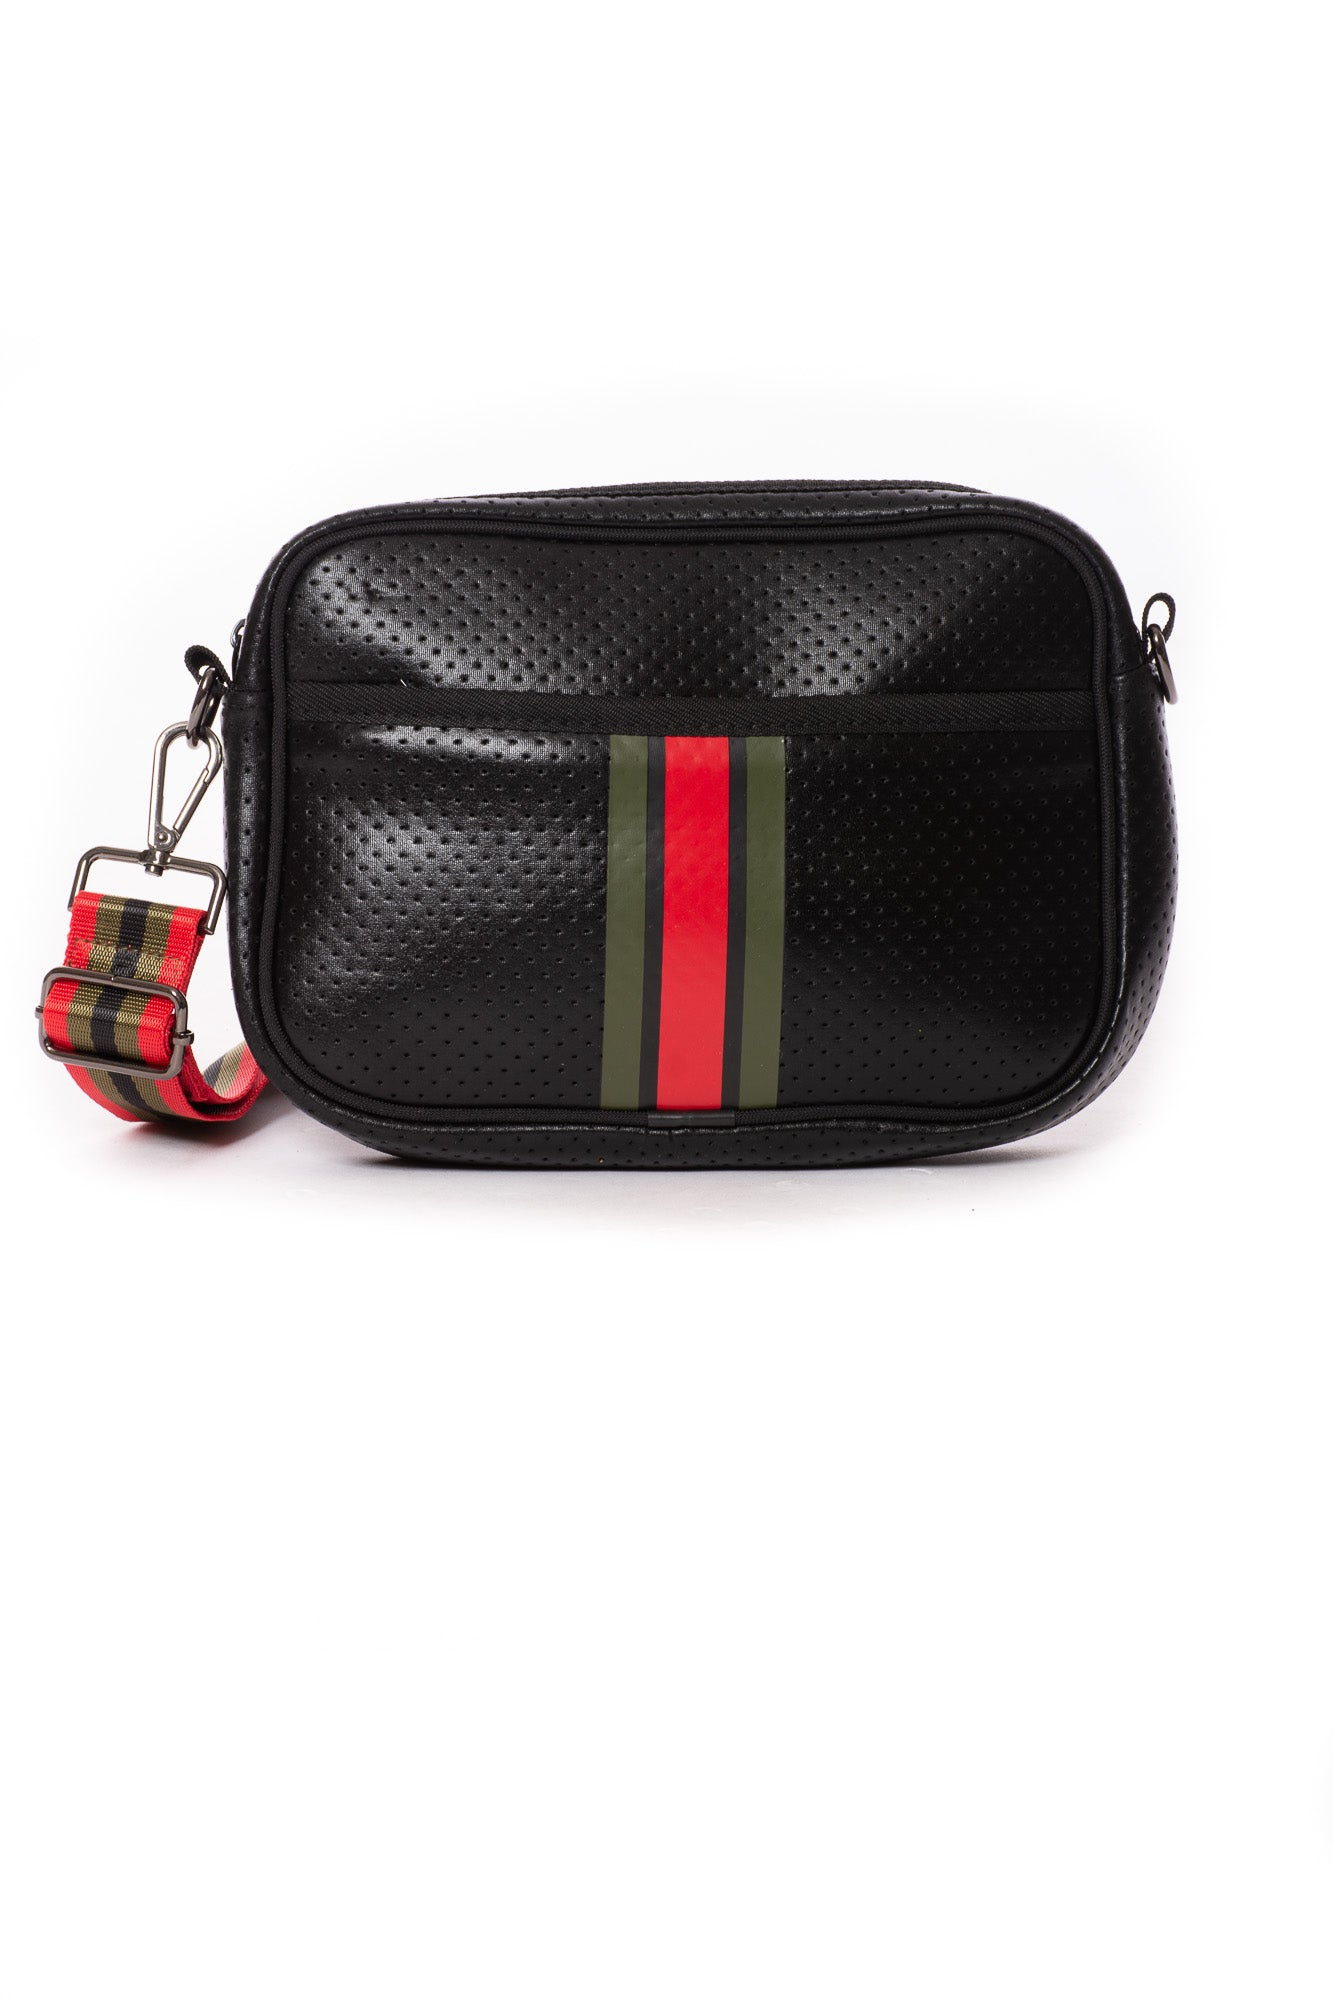 Haute Shore - Drew Bello Crossbody (Drew, Black w/Red & Green Stripe)